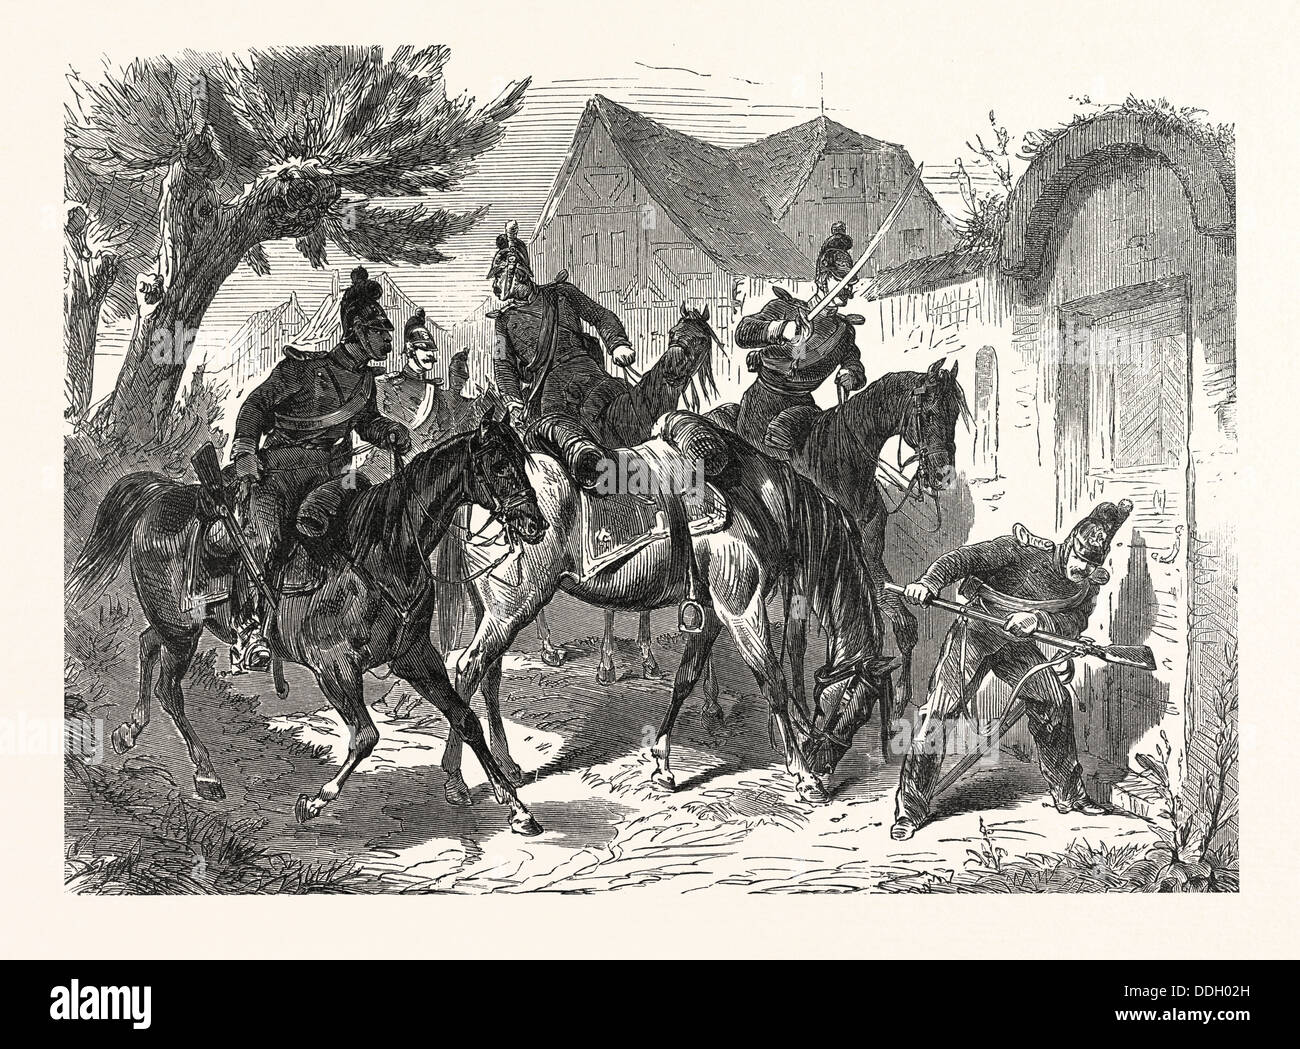 Franco-Prussian War: Bavarian Cavalry patrol in a French village, France - Stock Image